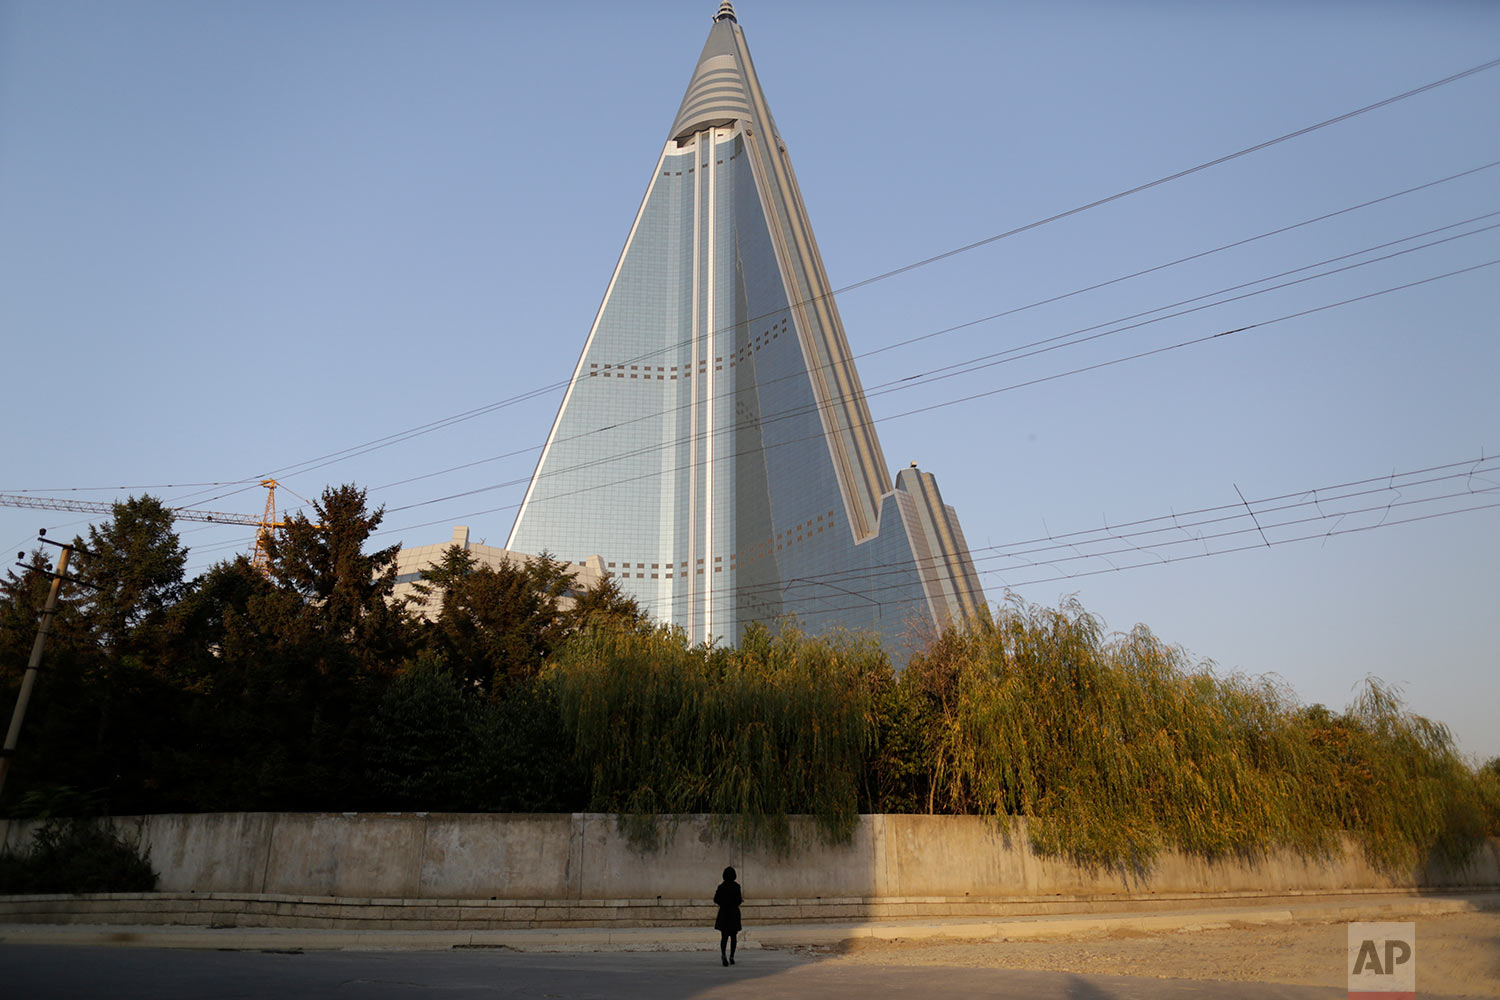 A woman walks near the 105-story Ryugyong Hotel in Pyongyang, North Korea, on Oct. 22, 2014. Construction on the massive hotel began in 1987, but the country's economic difficulties forced the project into repeated delays. Three decades later, the building has become a major Pyongyang landmark but has never been used as a hotel. (AP Photo/Wong Maye-E)